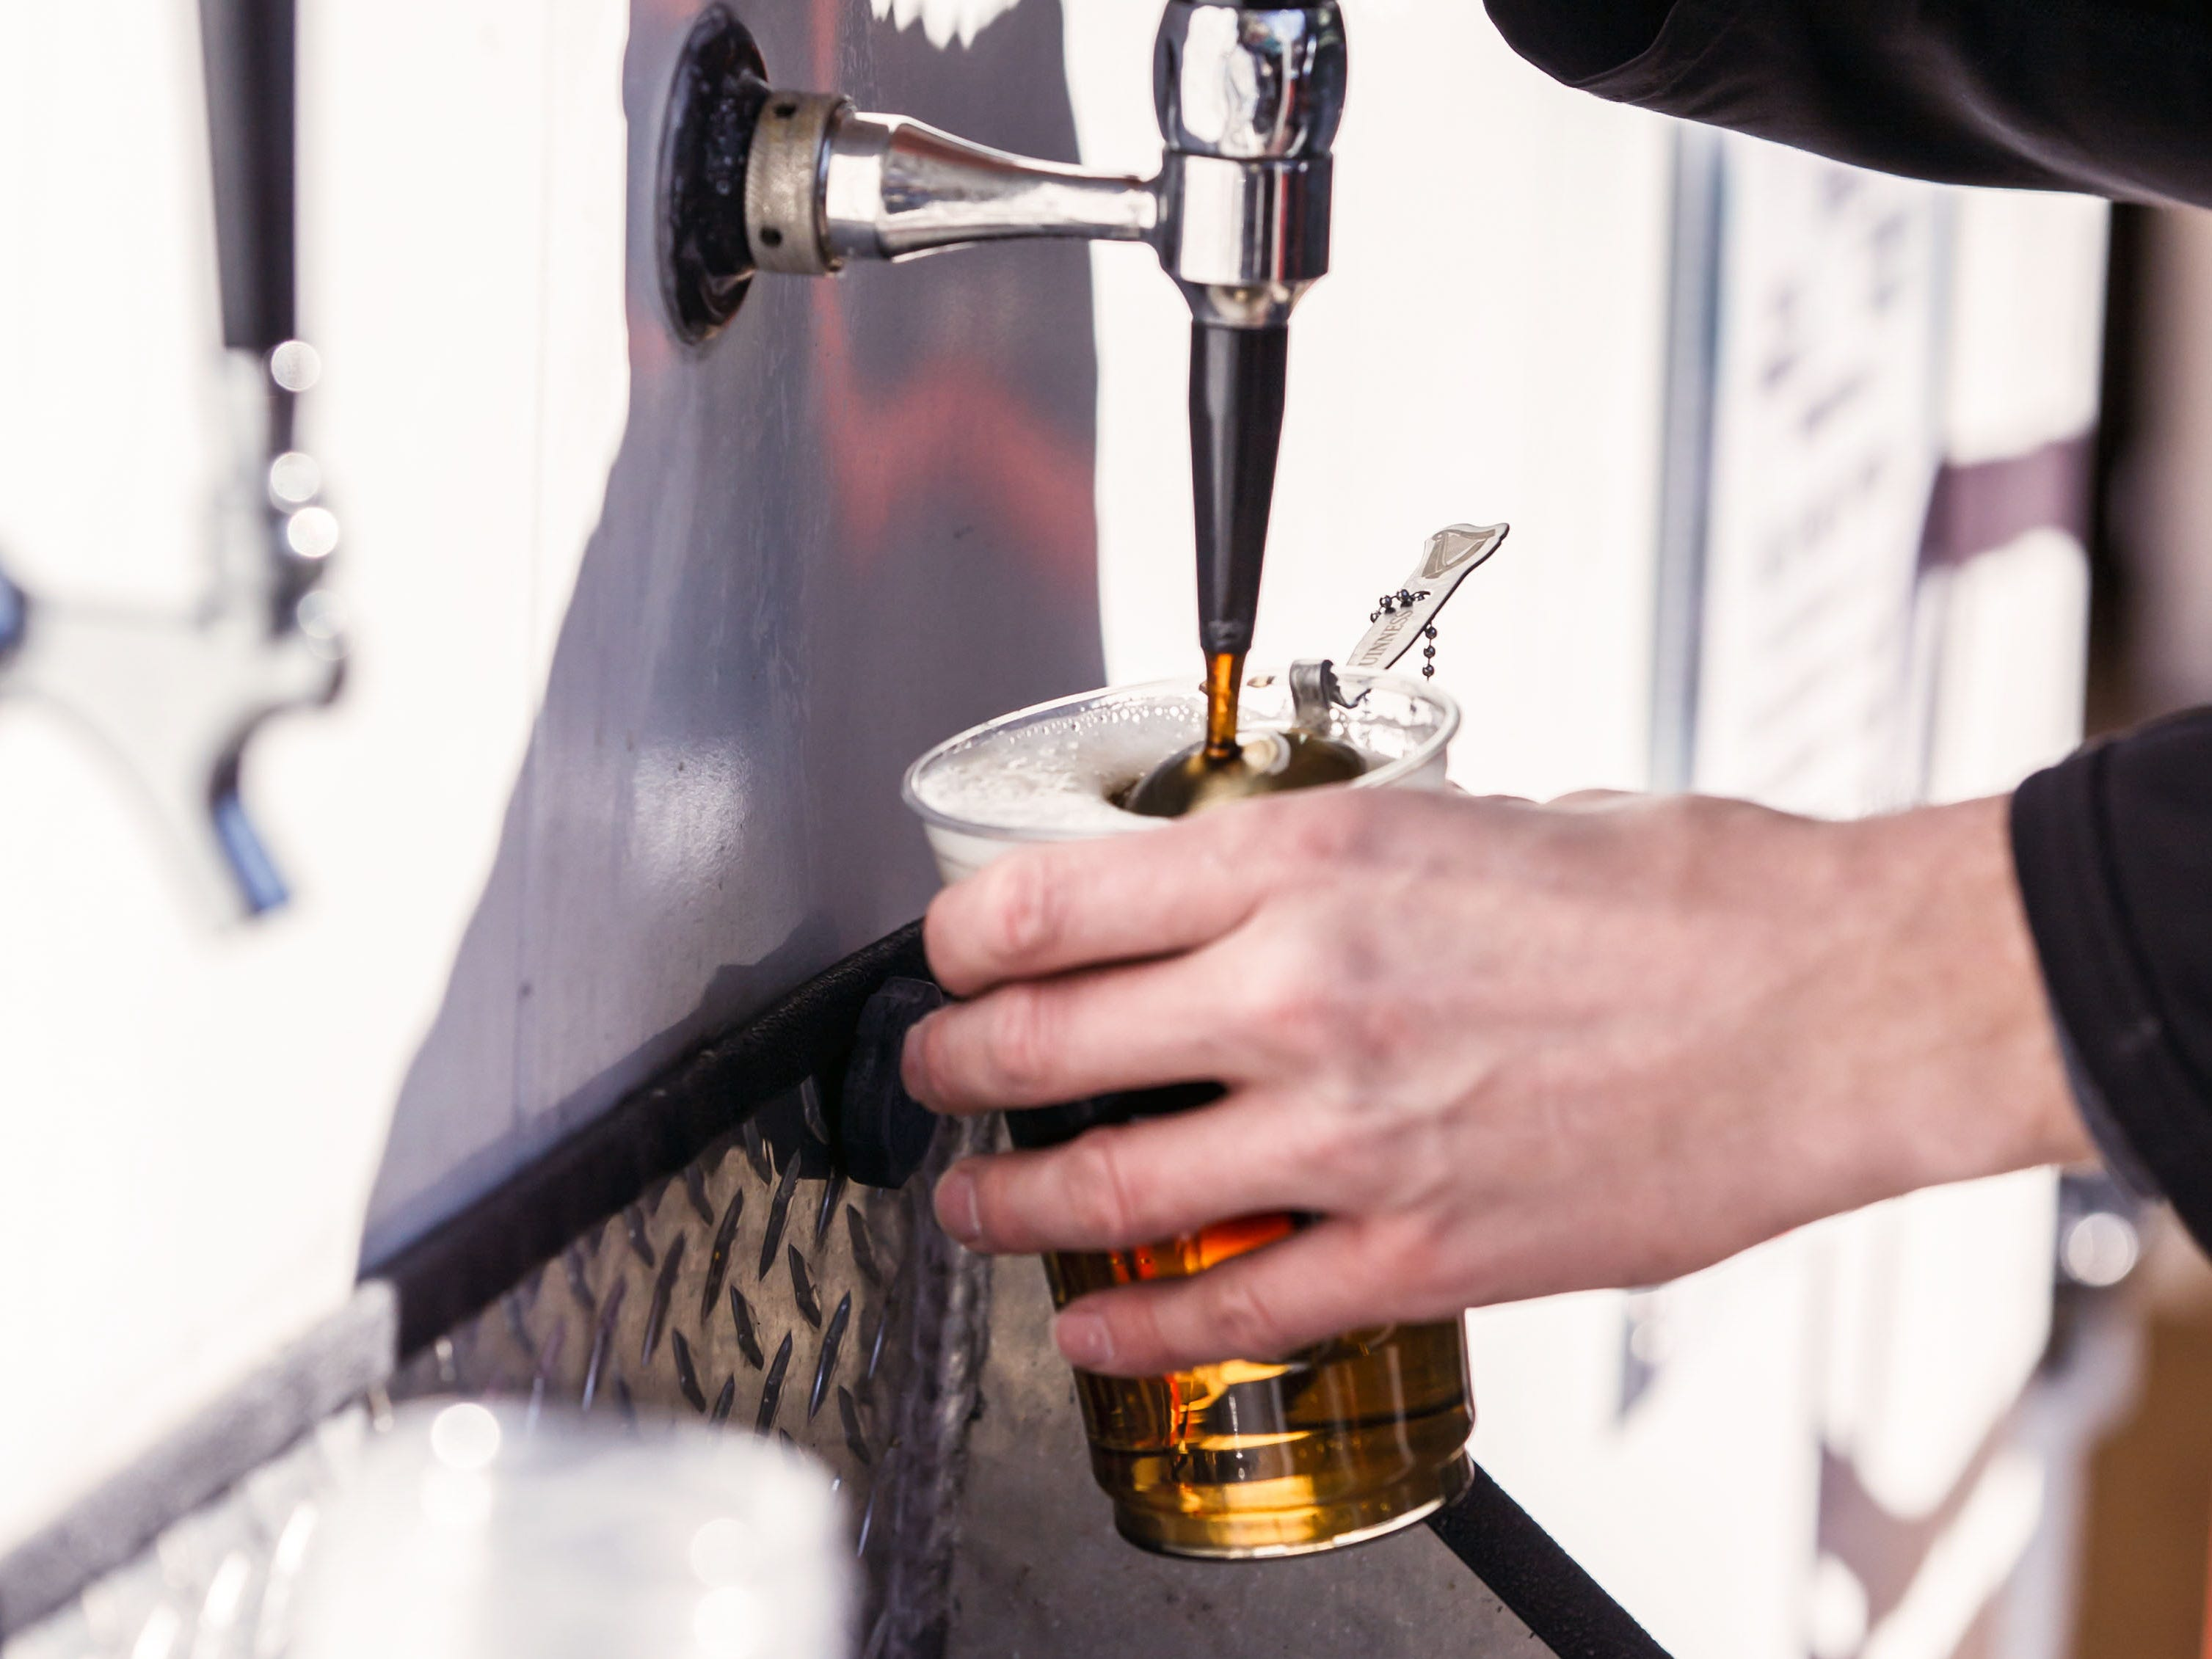 Three Lions Pub employee Dustin Uebelacker keeps the ale flowing during the Shorewood Shenanigans street festival on Saturday, March 16, 2019. The annual event on N. Oakland Ave. features live music, food and drink, games, vendors and more. Nine bars and restaurants along N. Oakland Ave. participate in the fun.